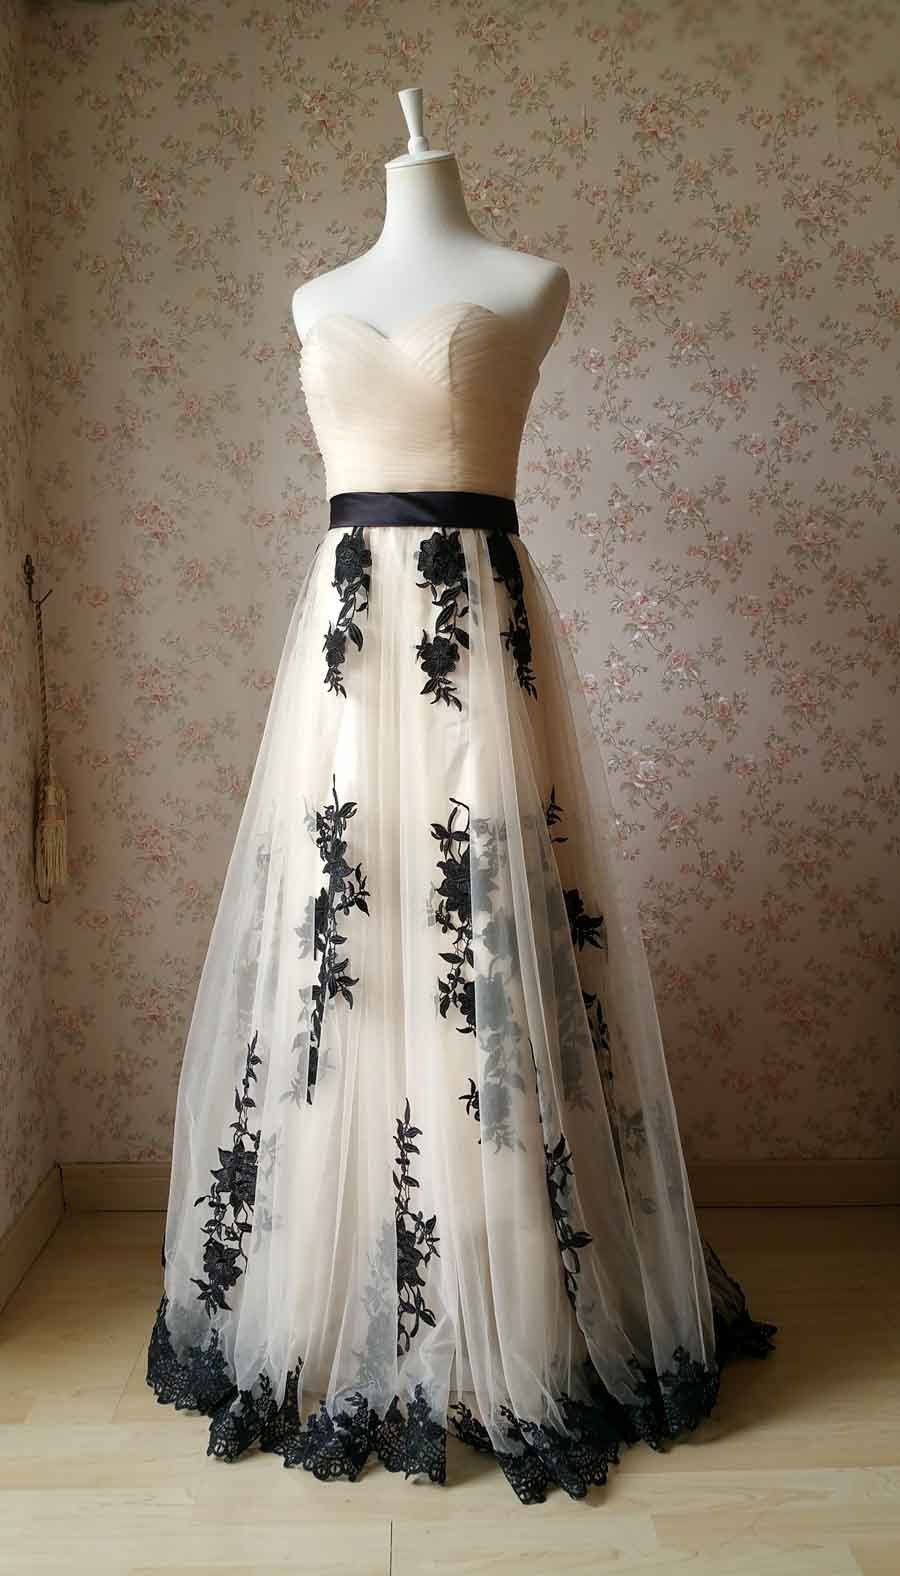 Ivory Strapless High Waist Bridesmaid Dress Embroidery Maxi Wedding Dresses 2018